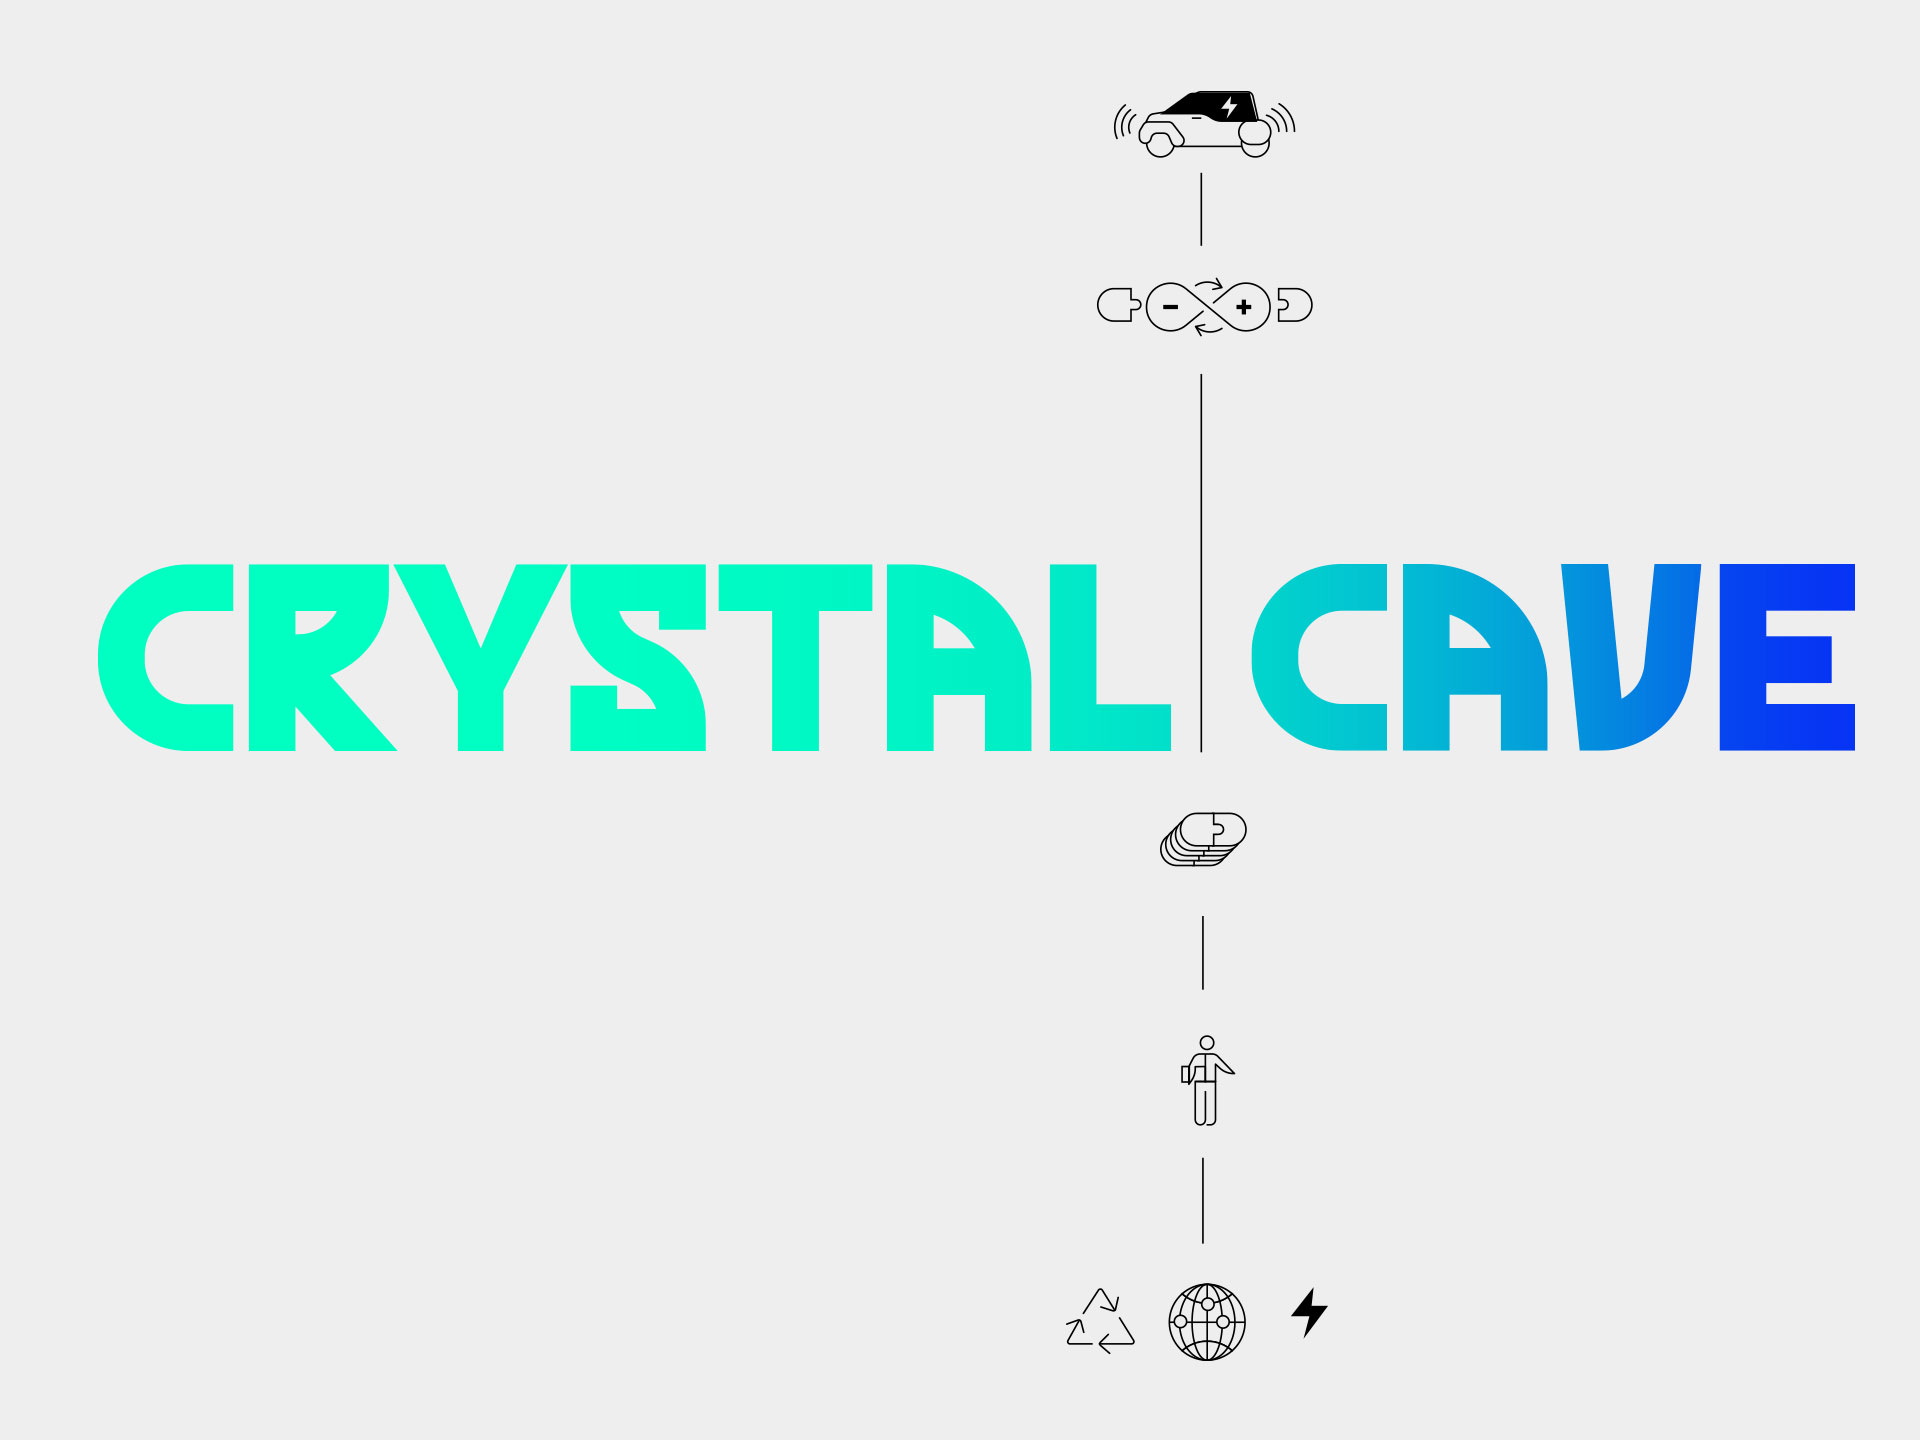 Crystal cave industry 4.0 (7)